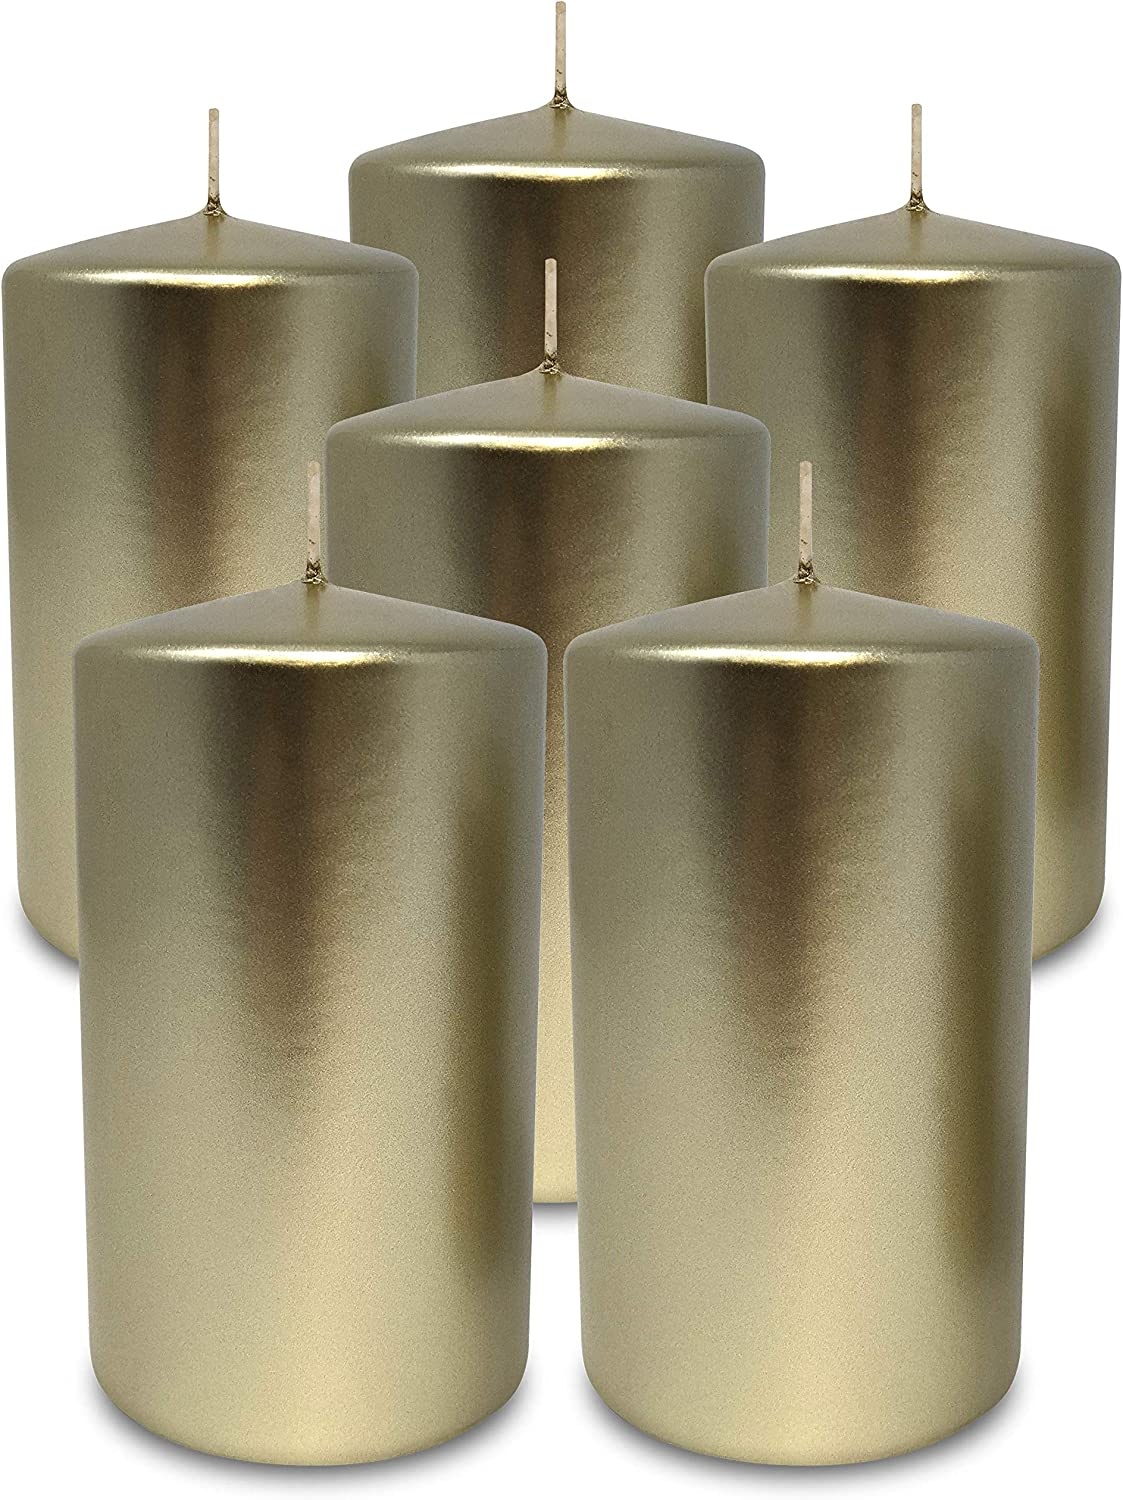 Hyoola Metallic Pillar Candles - Cand Choice Pack Cream 67% OFF of fixed price 6 Gold